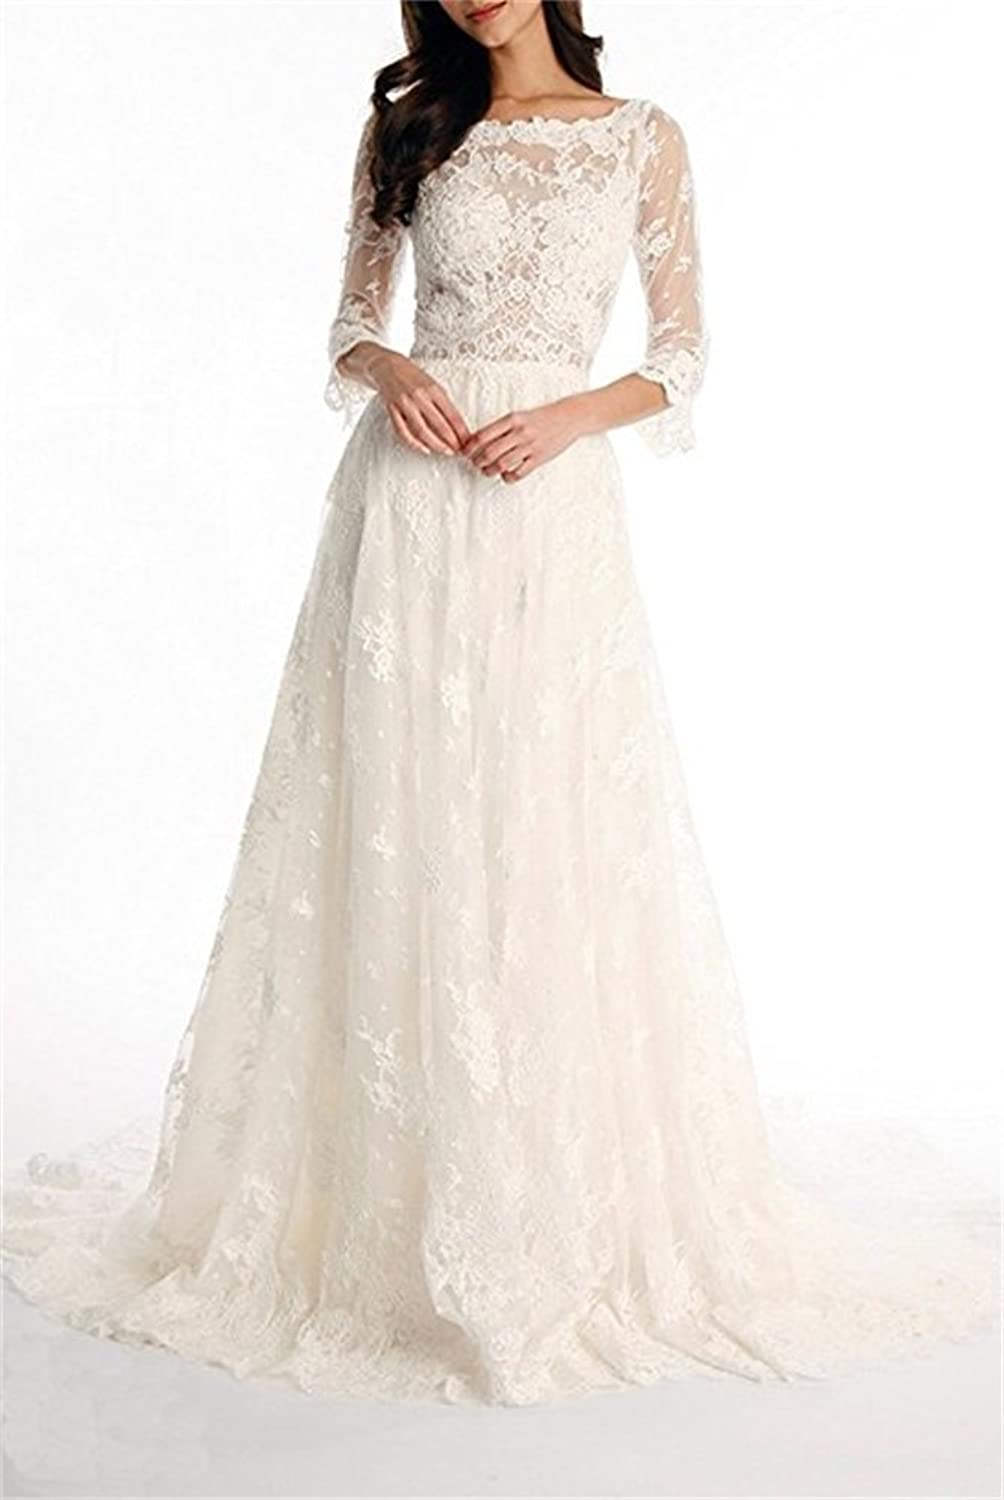 Ellystar Women's Luxury ALine Lace 3 4 Sleeve Zipper Bateau Wedding Dresses